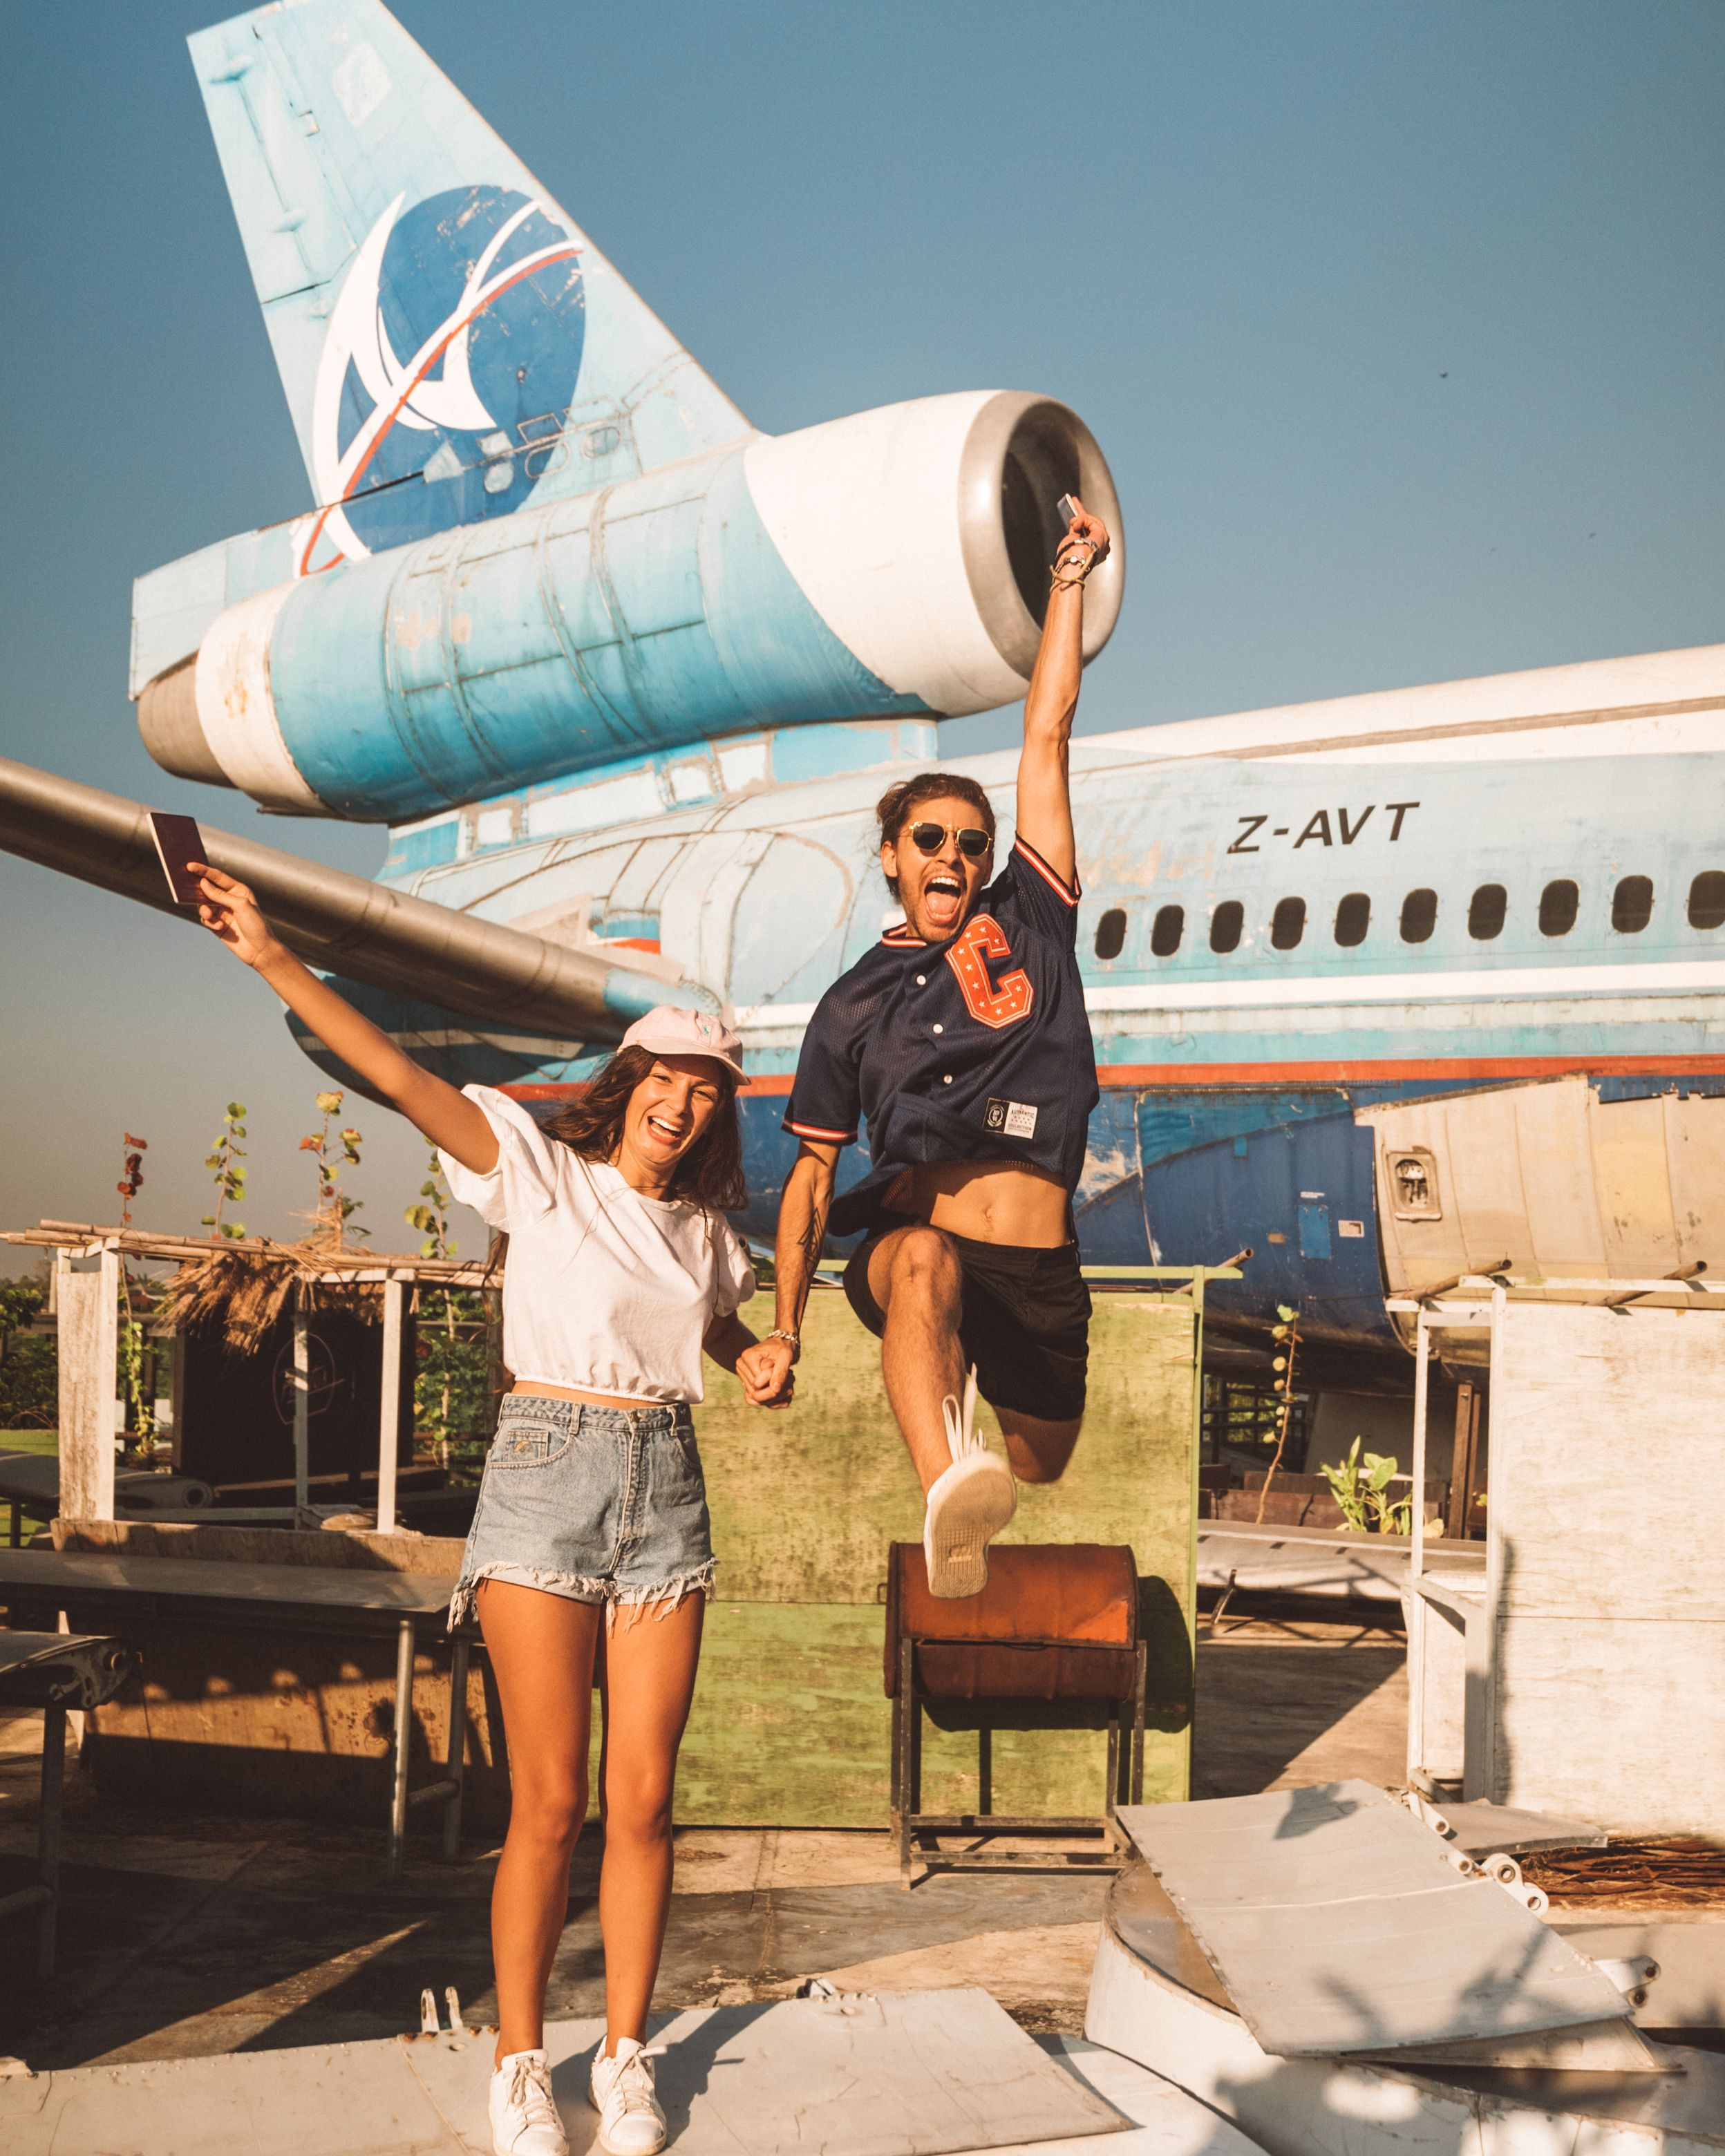 #happy#smile#fun#aircraft#airplane#onewayticketrip#travel#bali#balilife#baliexplore#balibible#travelcouple#coupletravel#vacations#dreamlife#dreamchaser#dreams#love#boyfriend#girlfriend#couplegoals#couple#relationshipgoals#relationship#lovehim